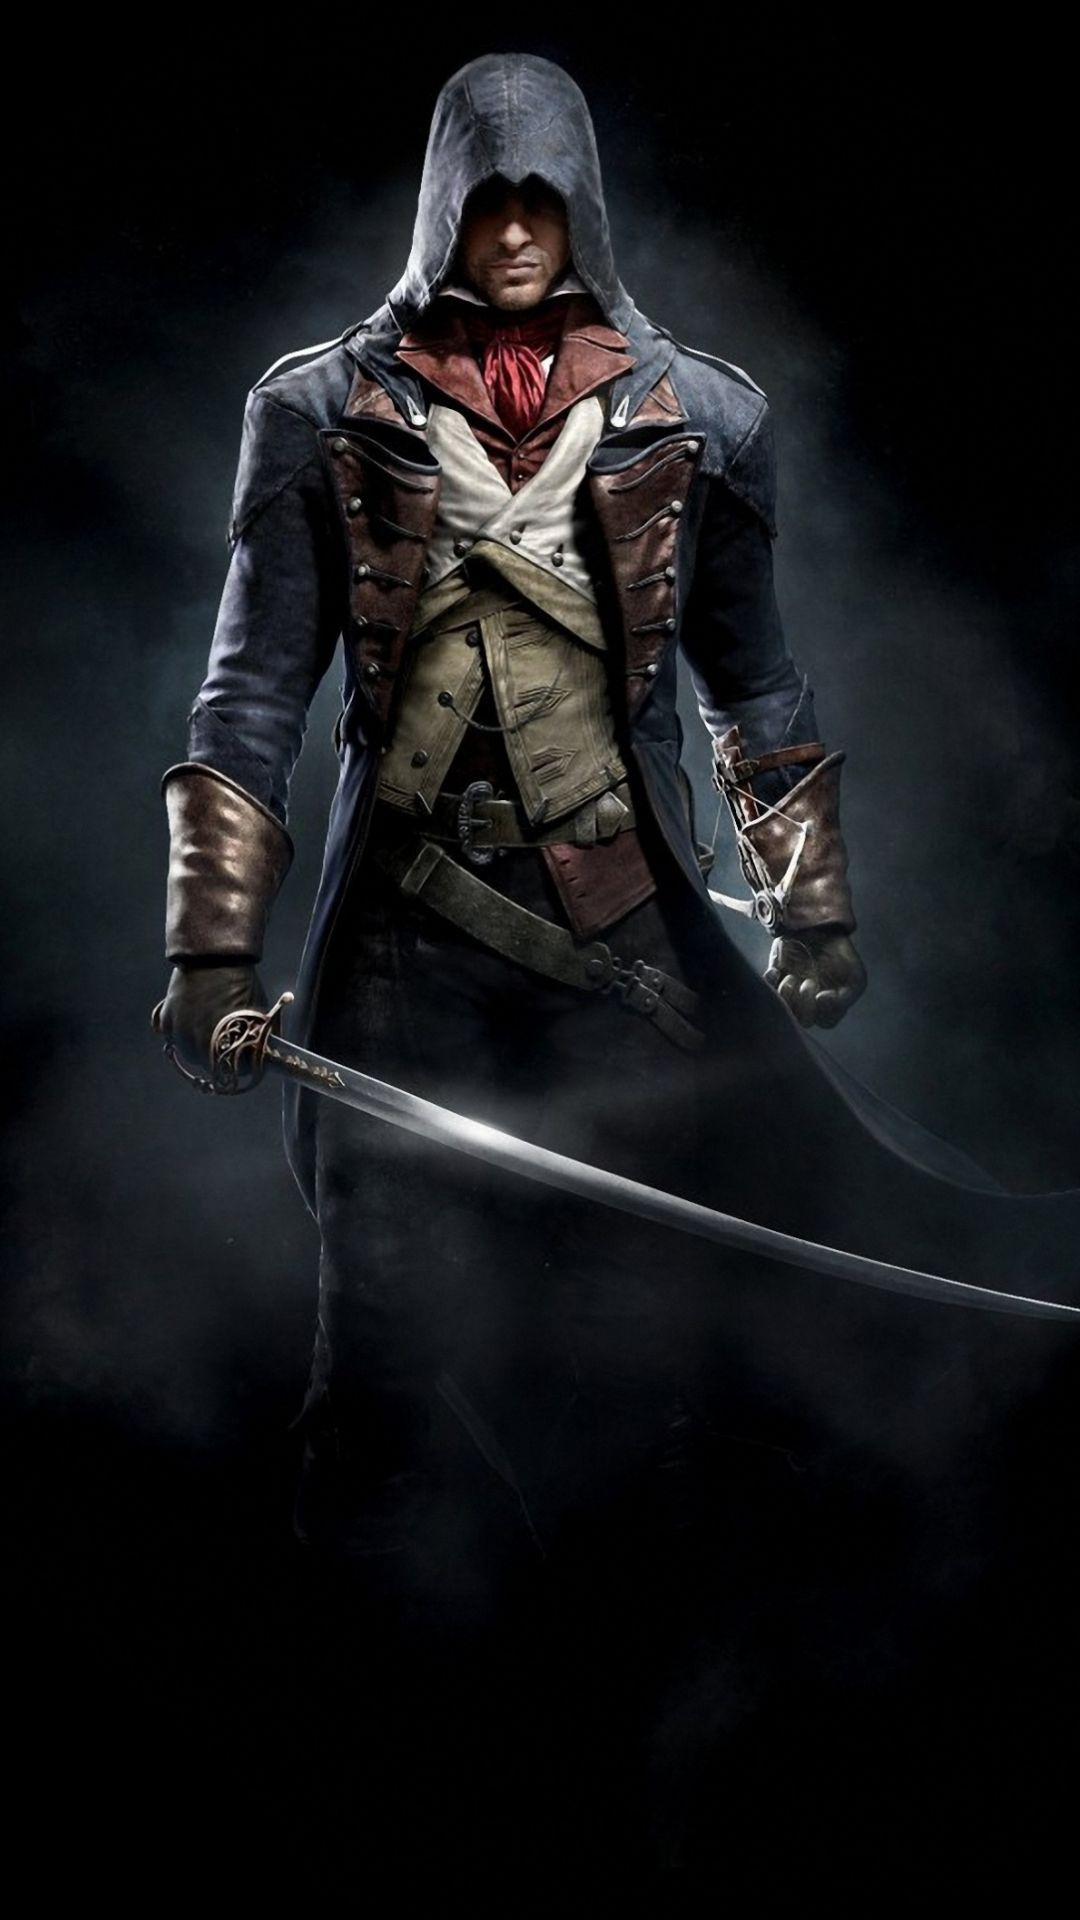 Assassins Creed Hd Iphone Wallpaper Hupages Download Iphone Wallpapers Assassin S Creed Wallpaper Assassins Creed Unity Arno Assassins Creed Art